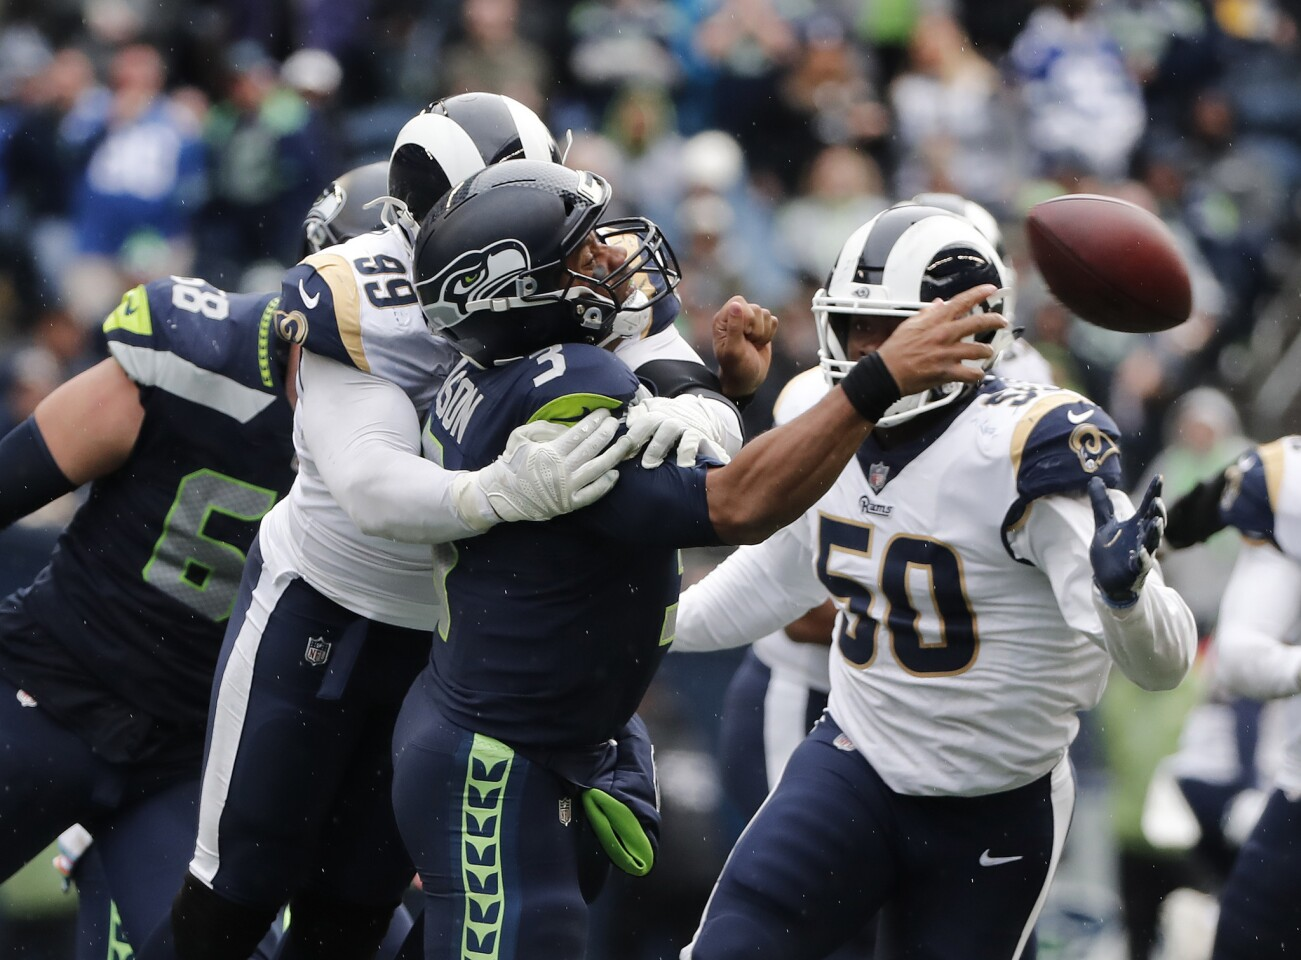 Rams defensive tackle Aaron Donald (99) sacks Seattle Seahawks quarterback Russell Wilson (3) in the second half at CenturyLink Field on Sunday in Seattle.